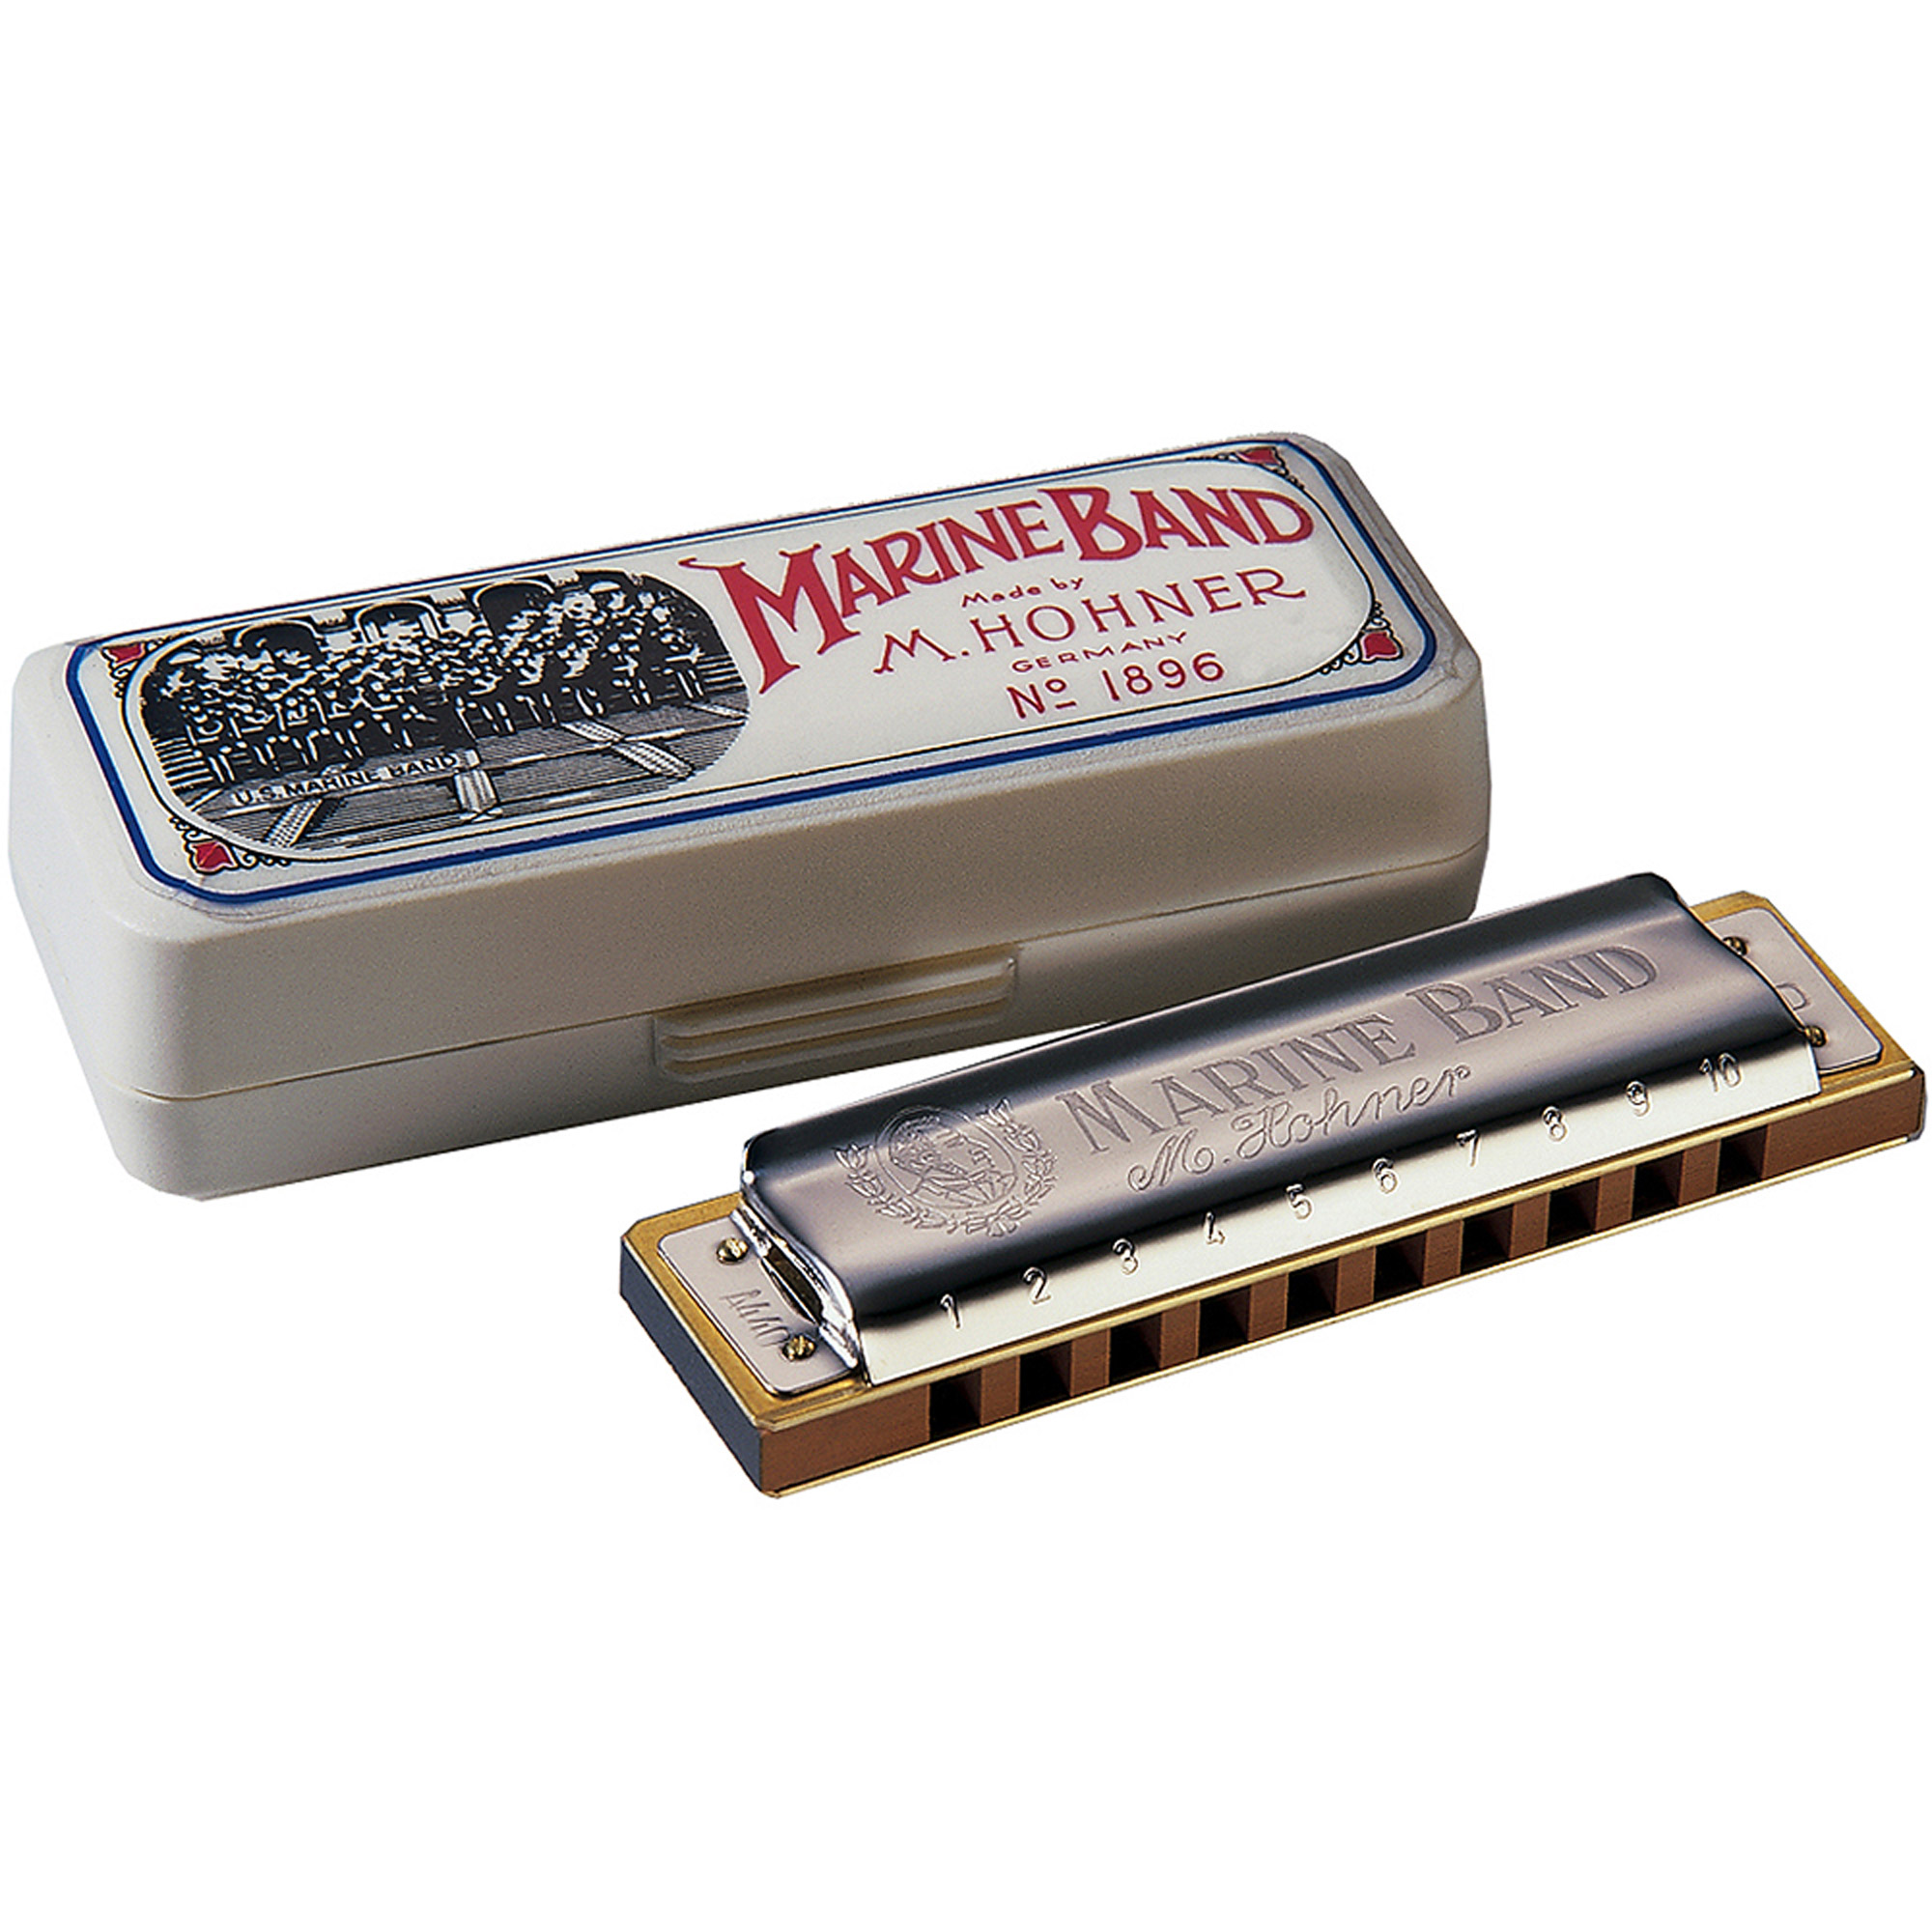 Hohner Marine Band Diatonic Harmonica, Key of C Major